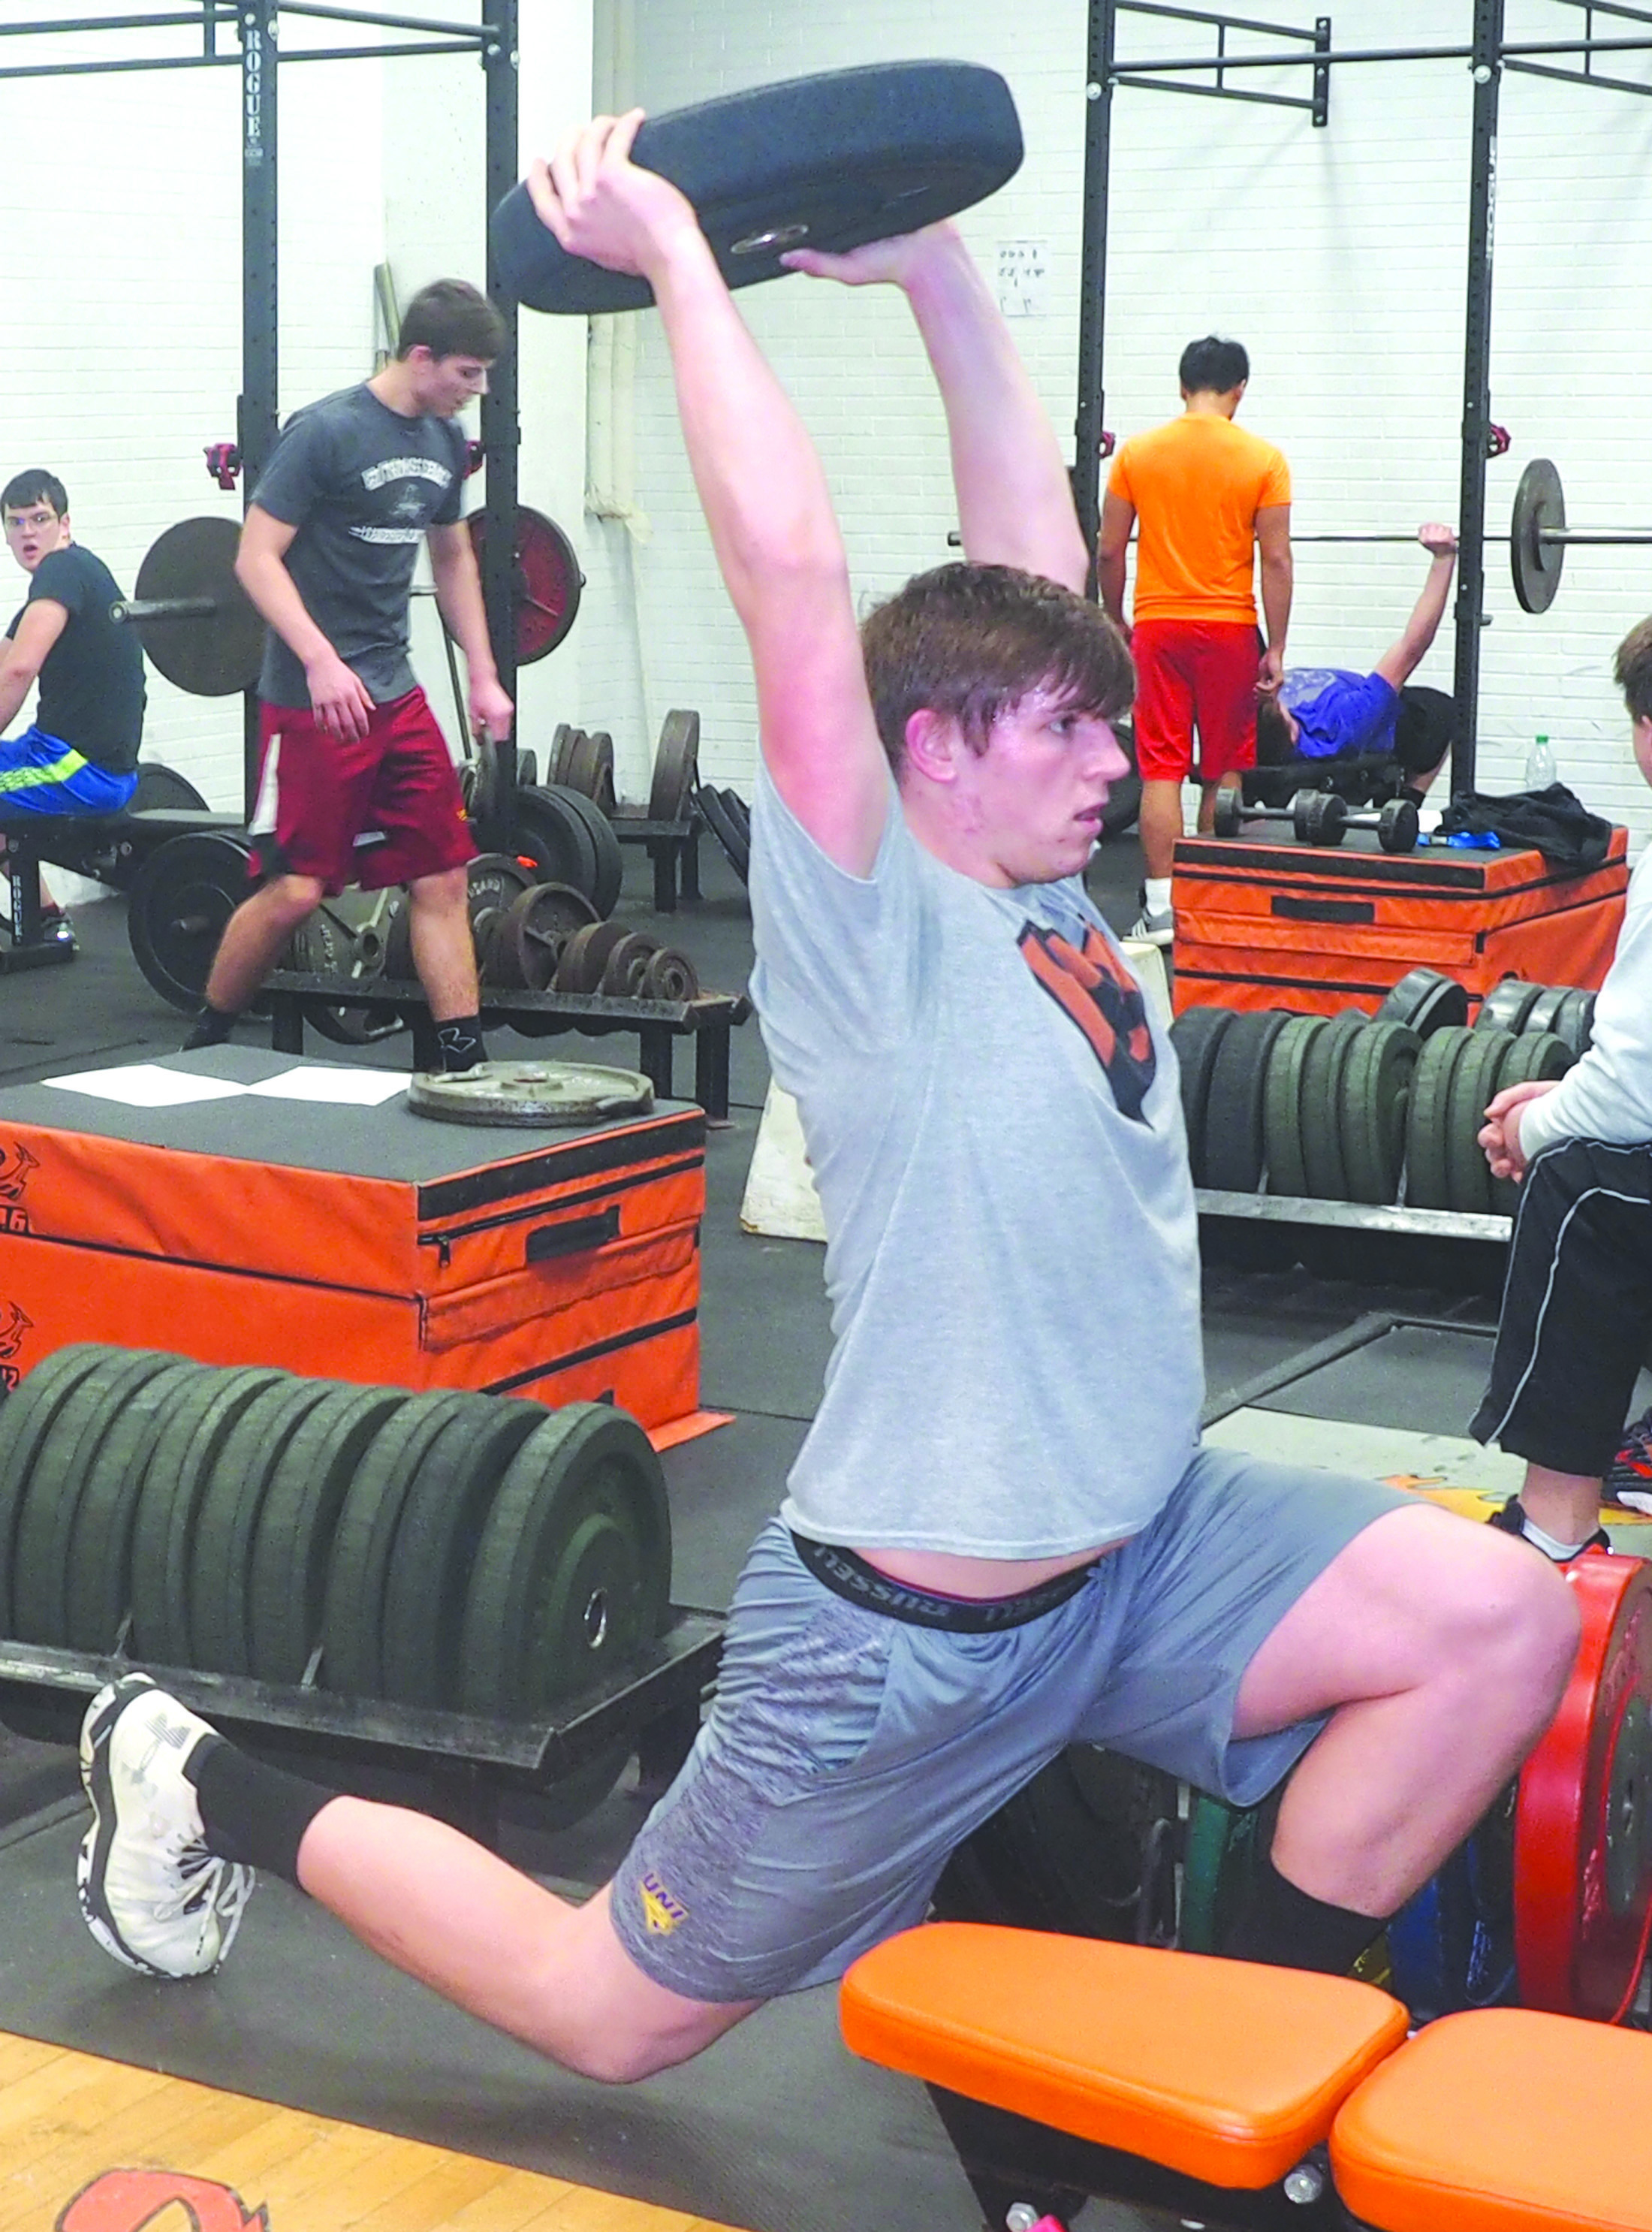 With gyms no longer an option, Comet coach offers at-home training tips